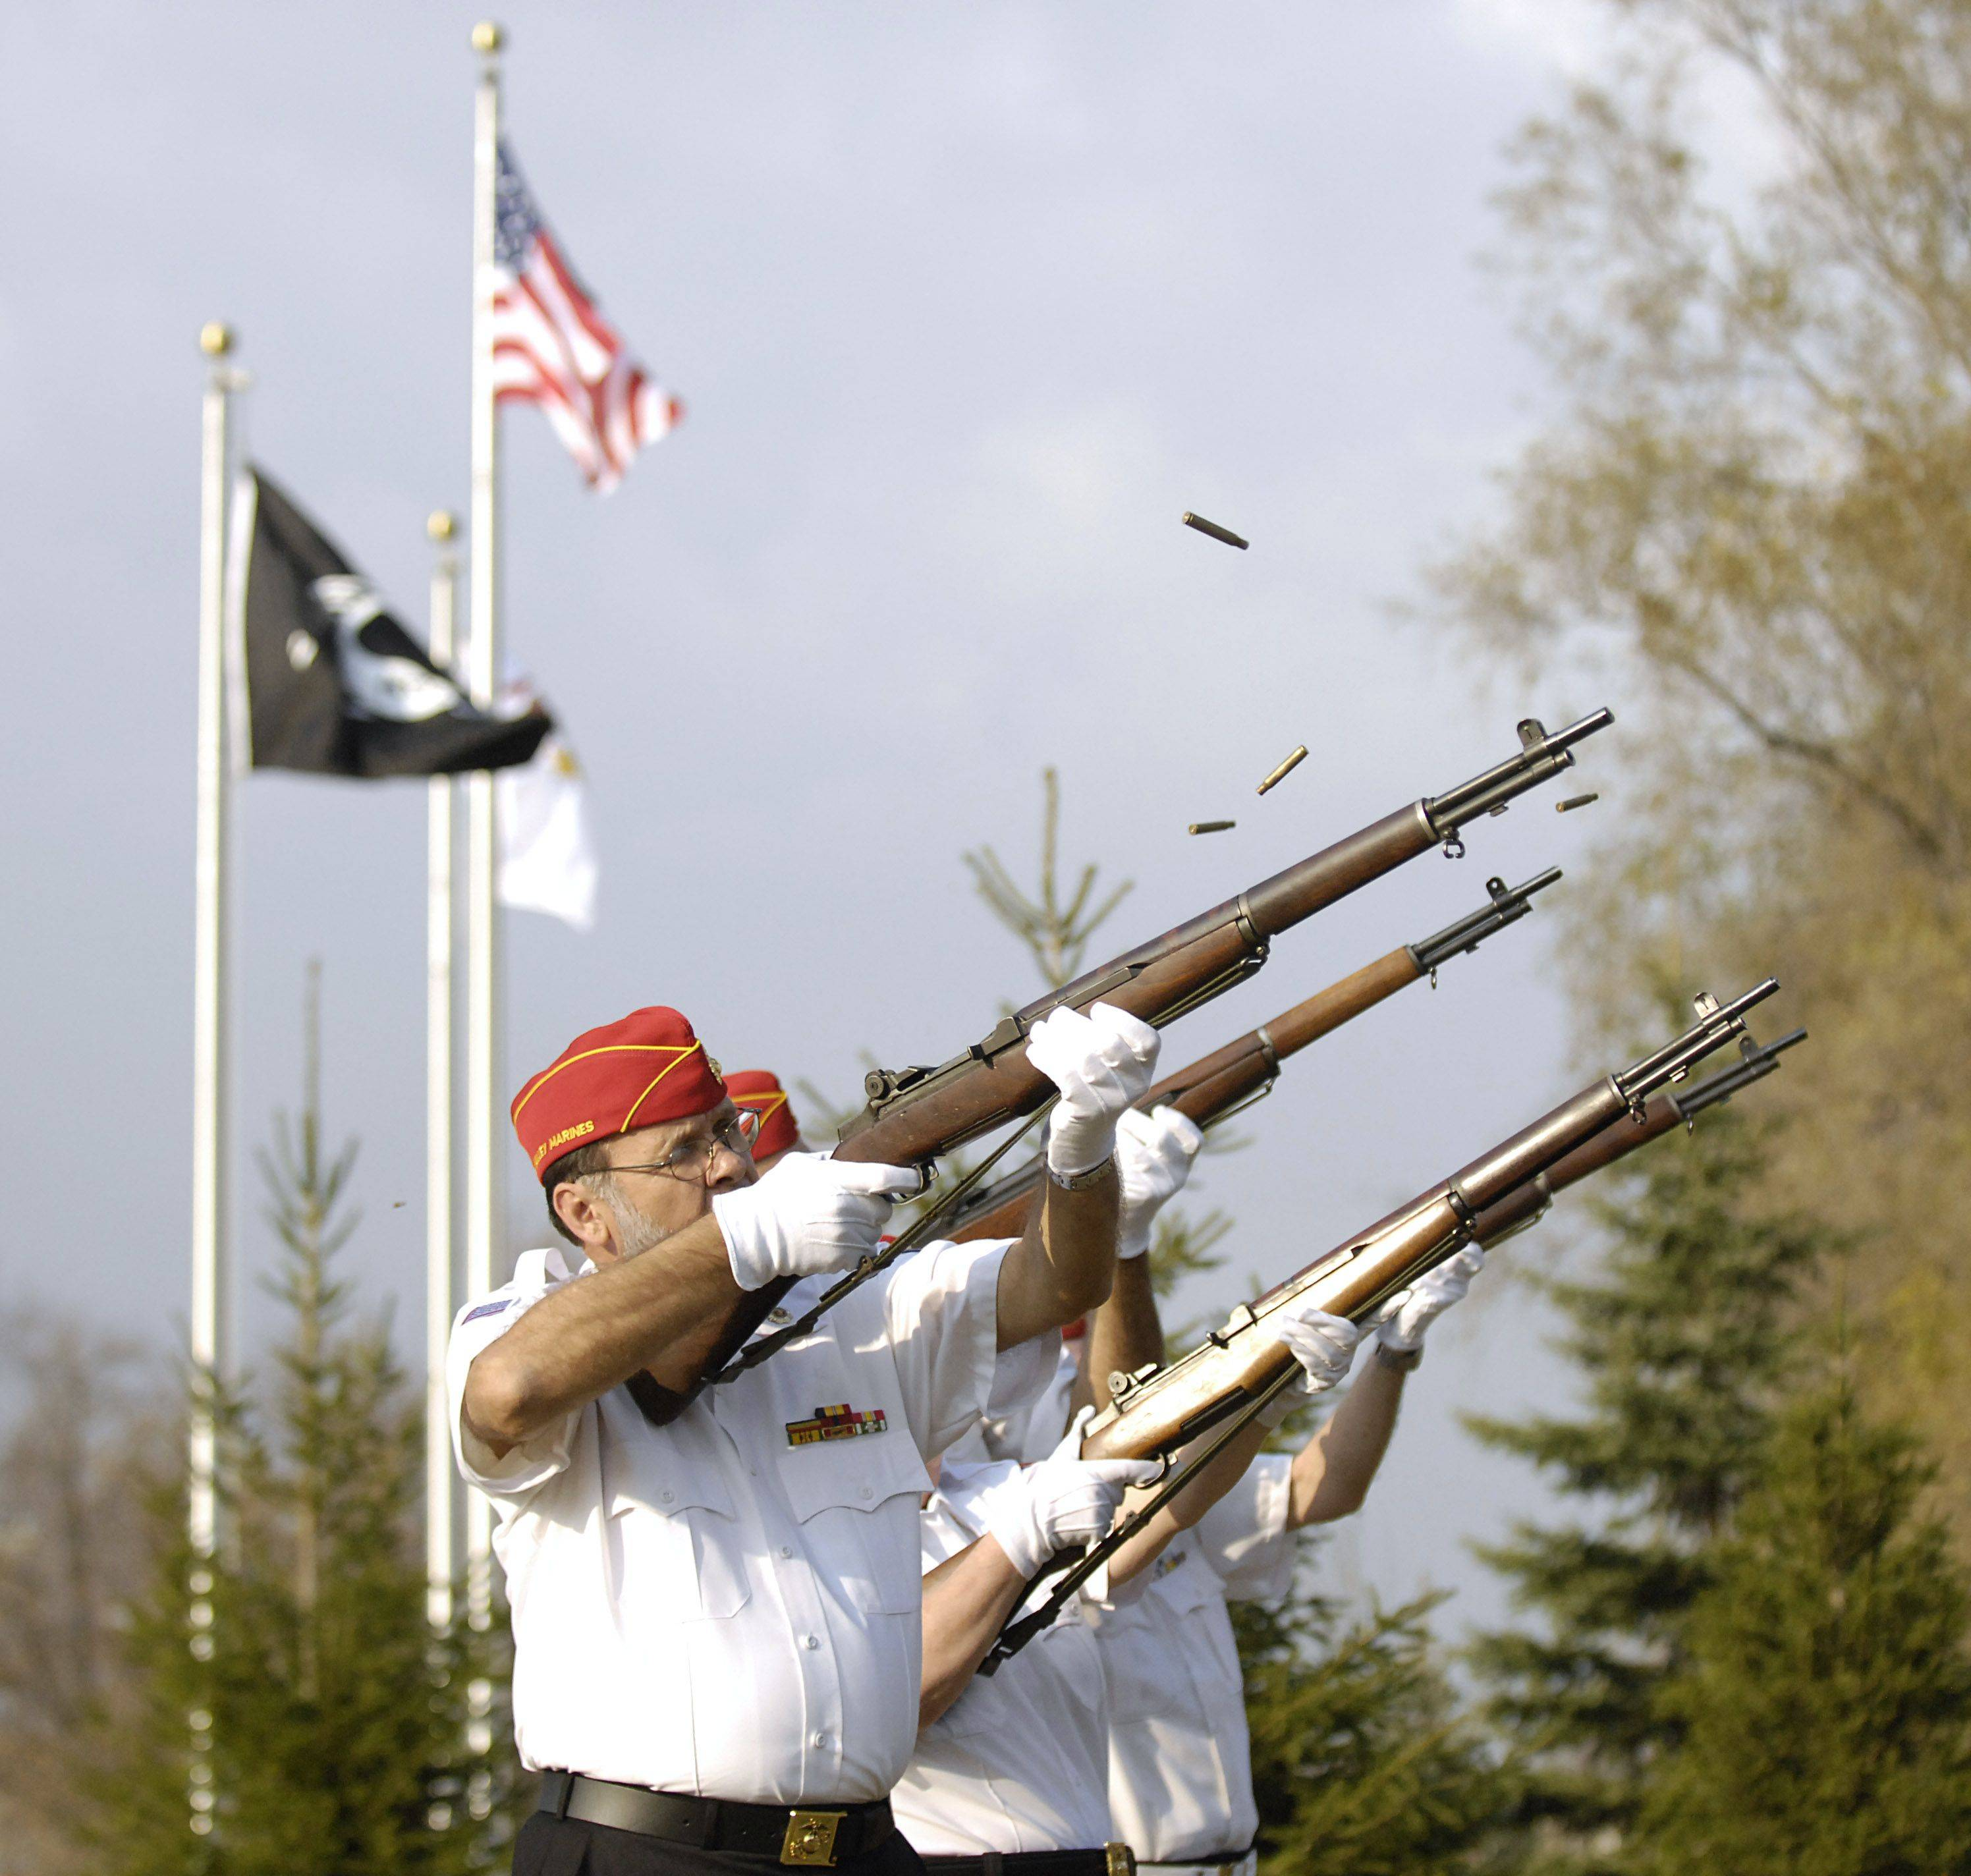 Tom Bulin of Oswego serves in the Fox Valley Marine Corps Firing Squad for the Veterans Day ceremony in North Aurora on Thursday, November 11. Bulin served in the Marines from 1965-69.